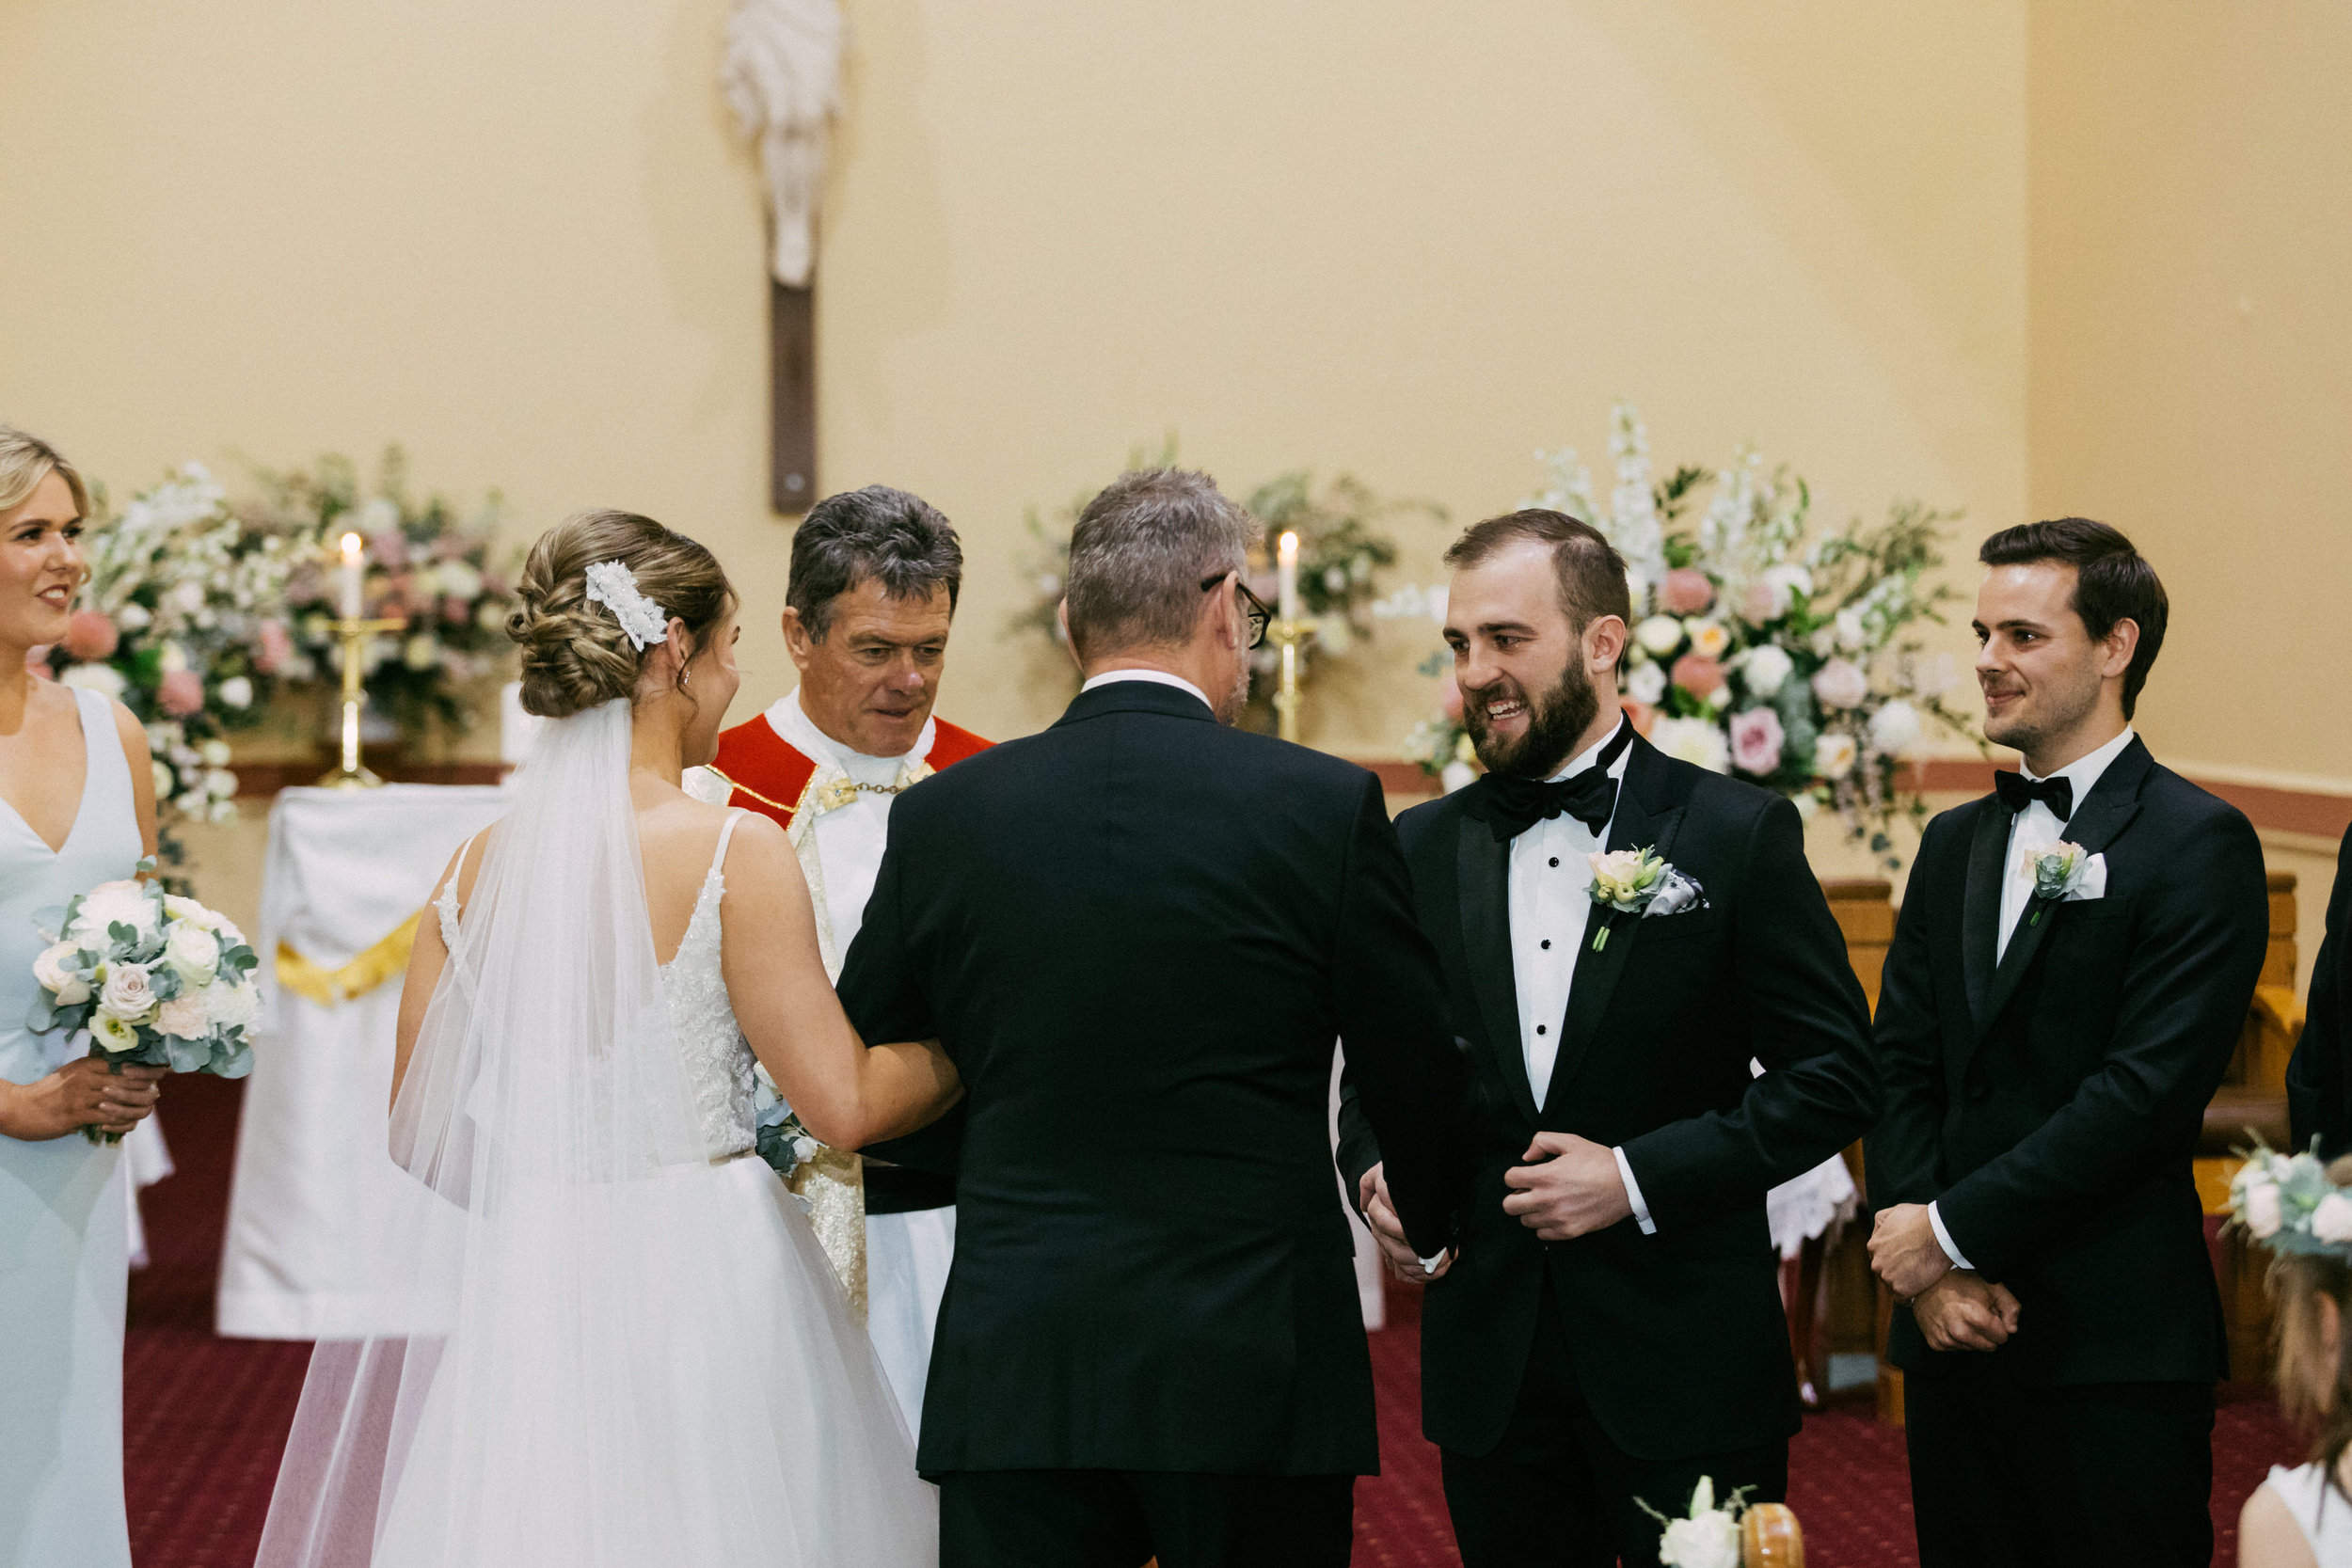 Adelaide Wedding 2019 058.jpg